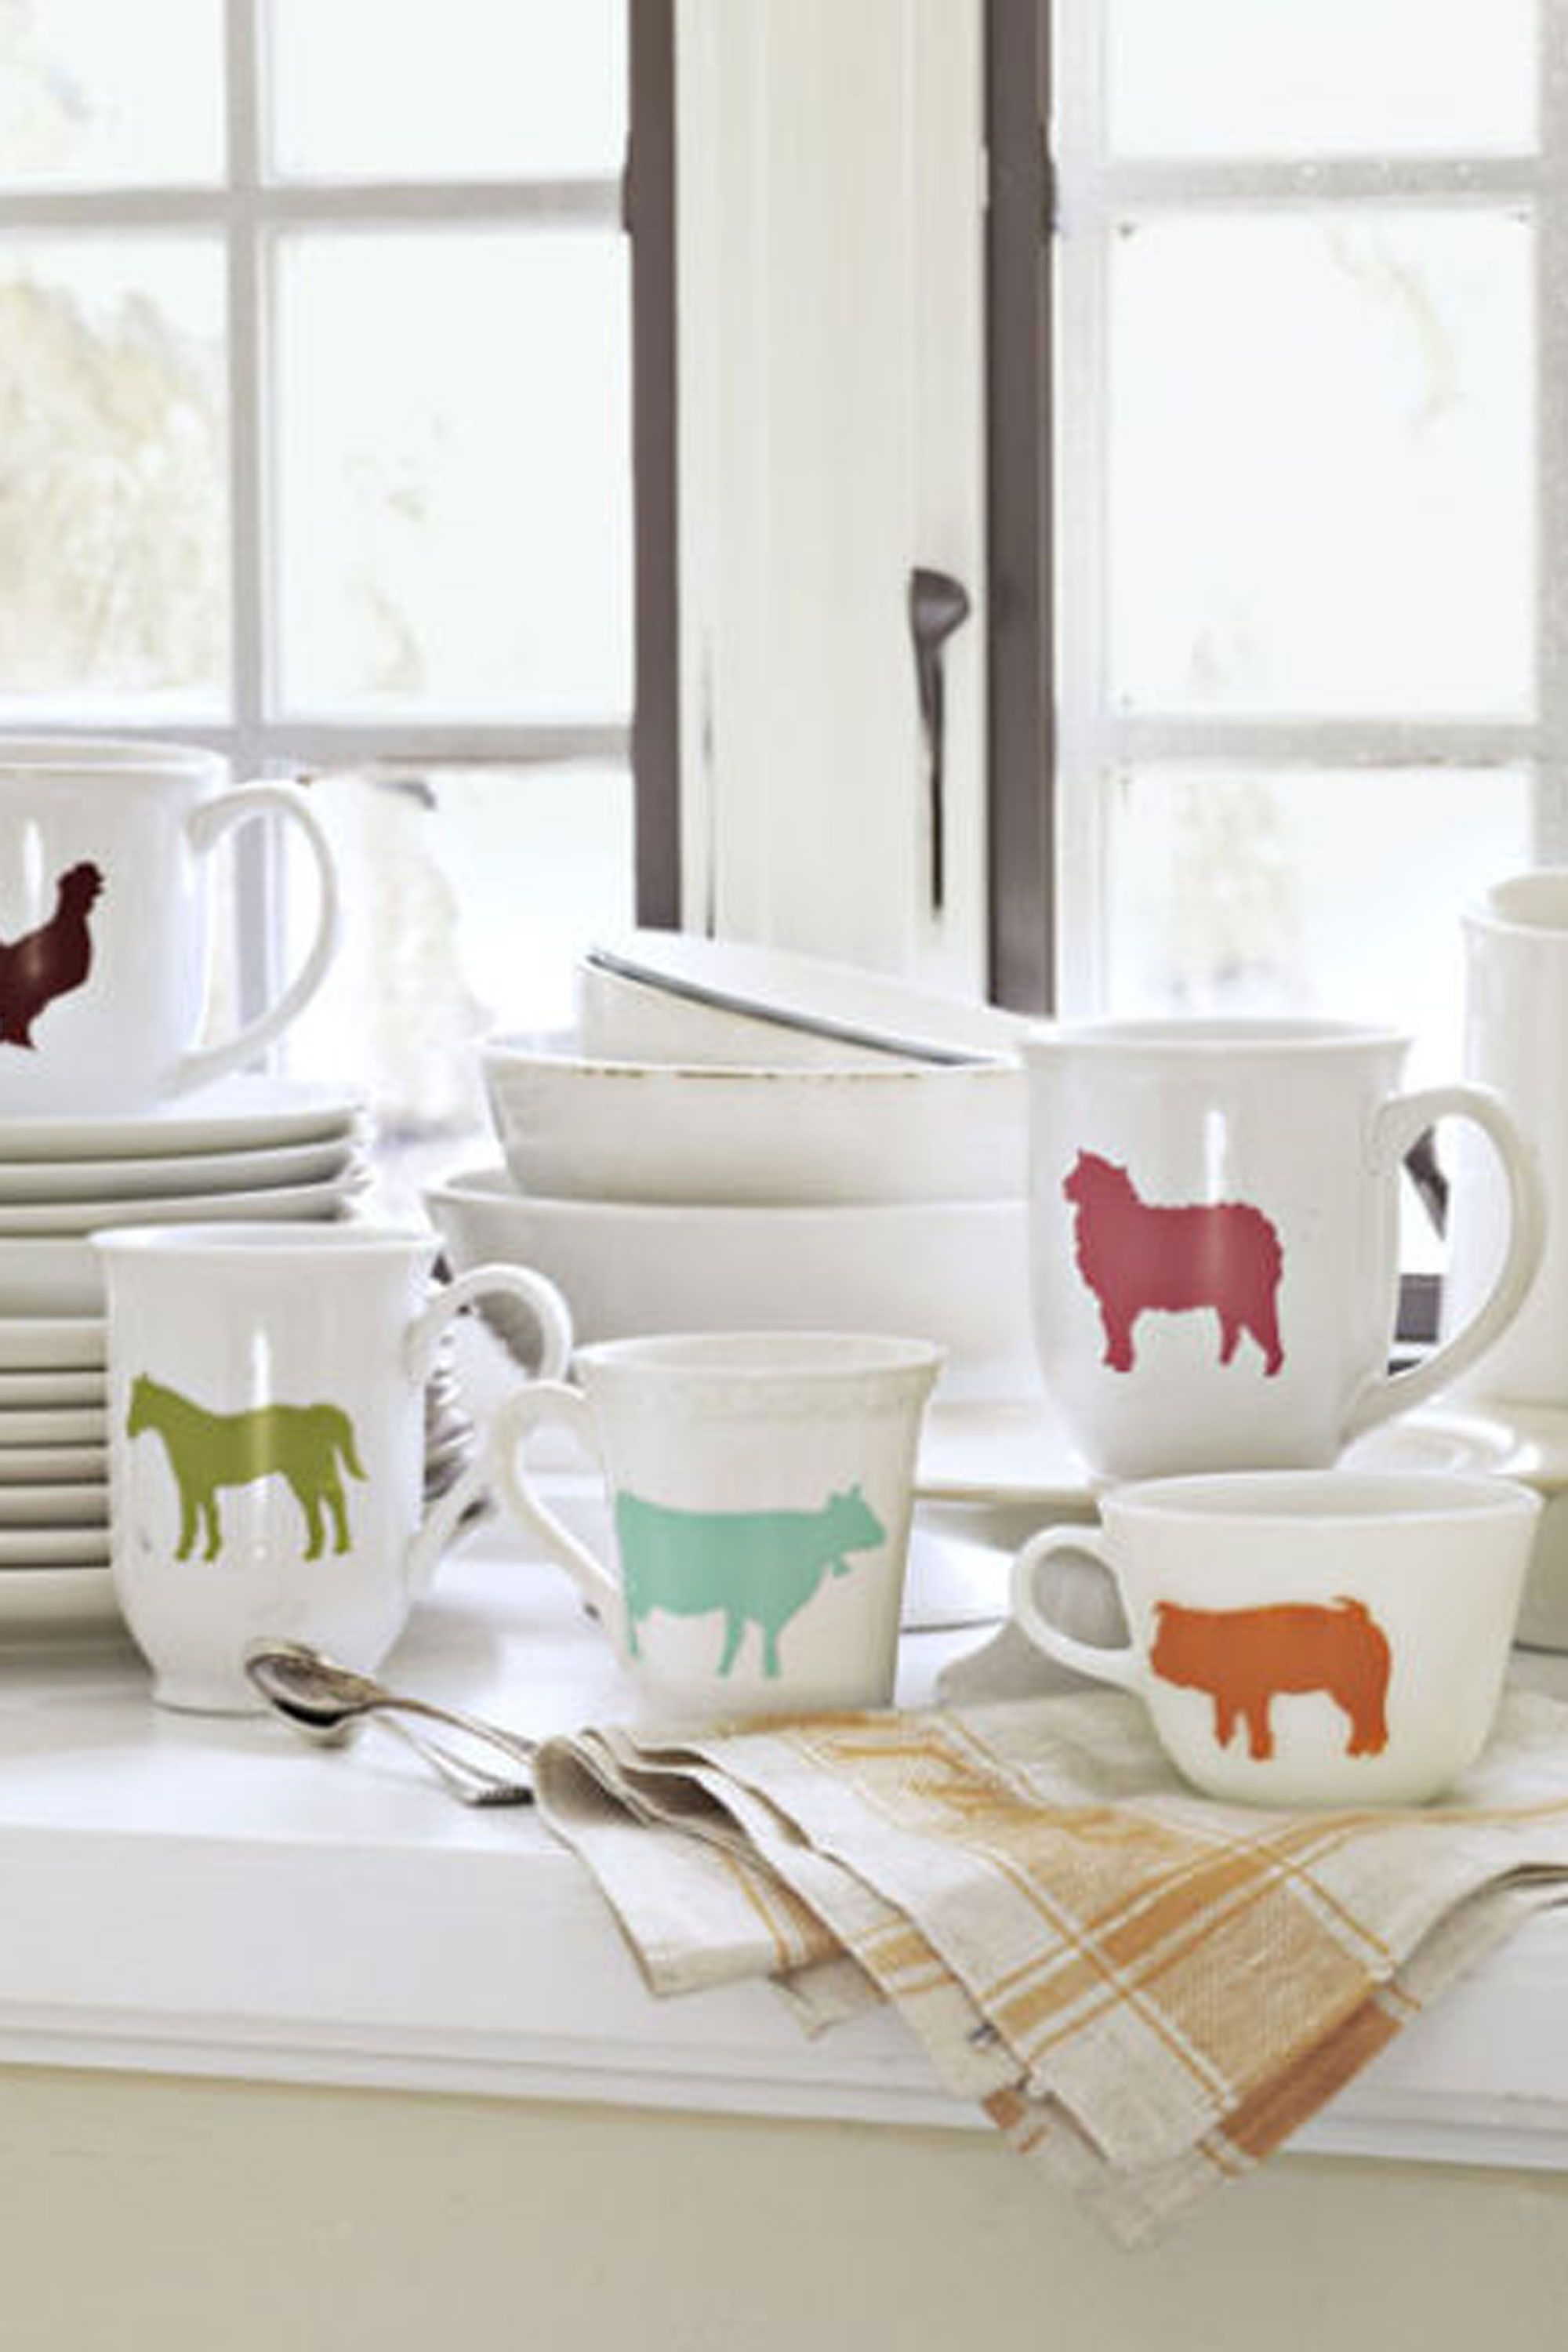 12 Fun DIY Projects for Your Kitchen | Stenciling, Craft and ...